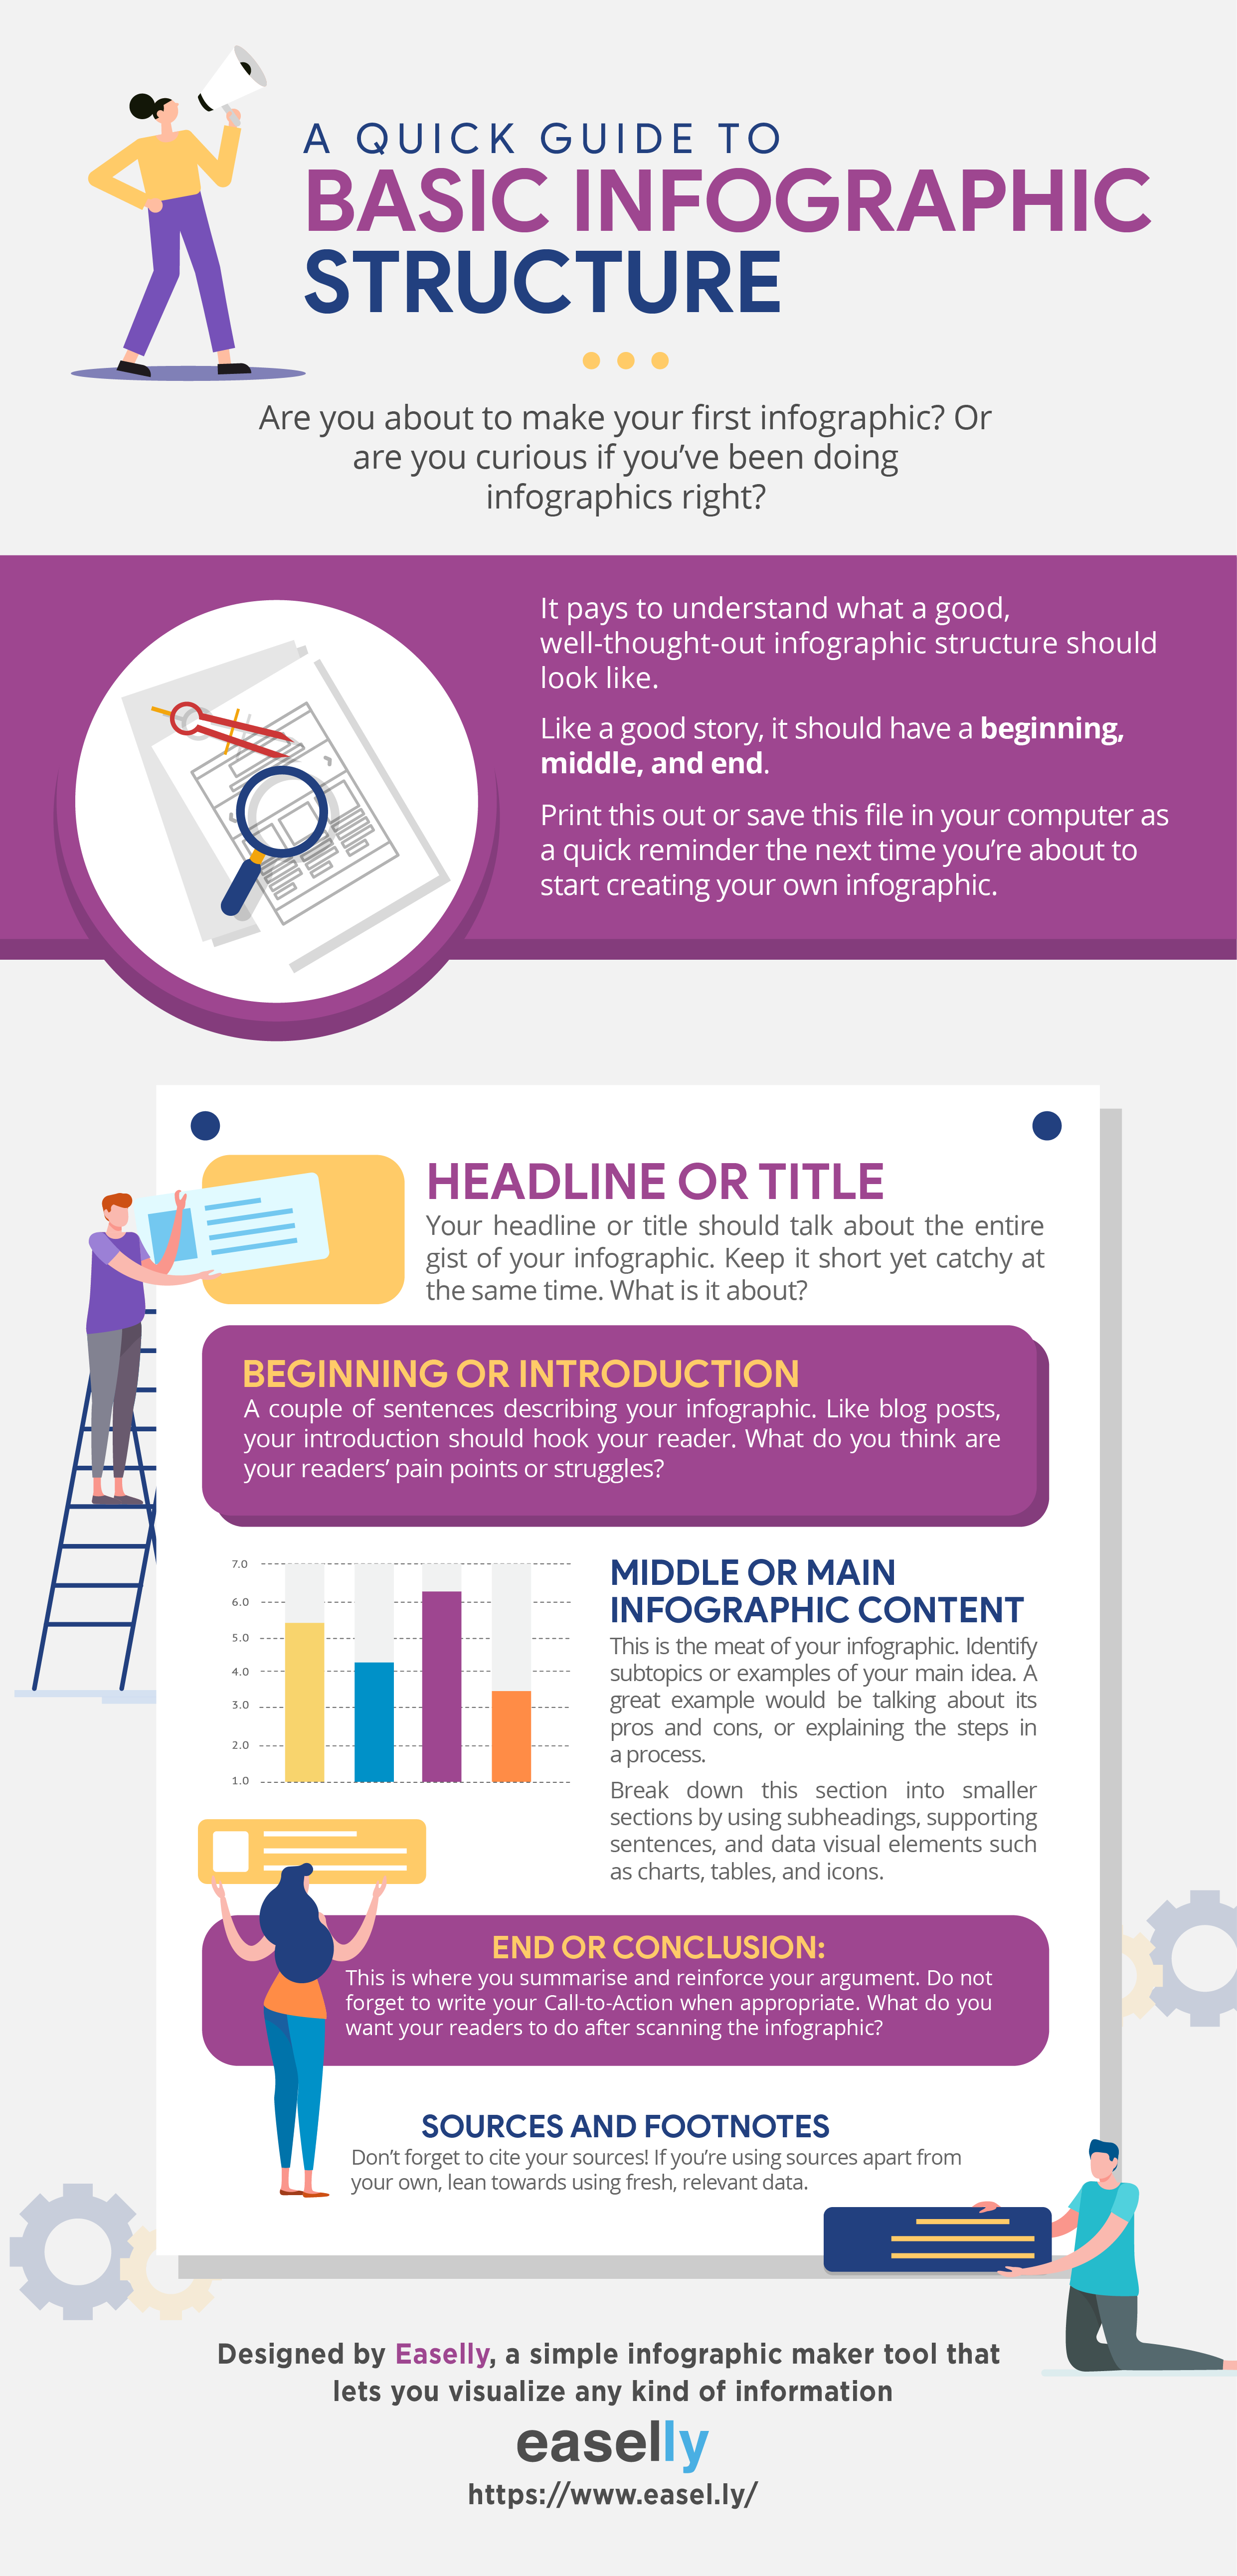 Infographic Design Basics: The Simple Infographic Structure